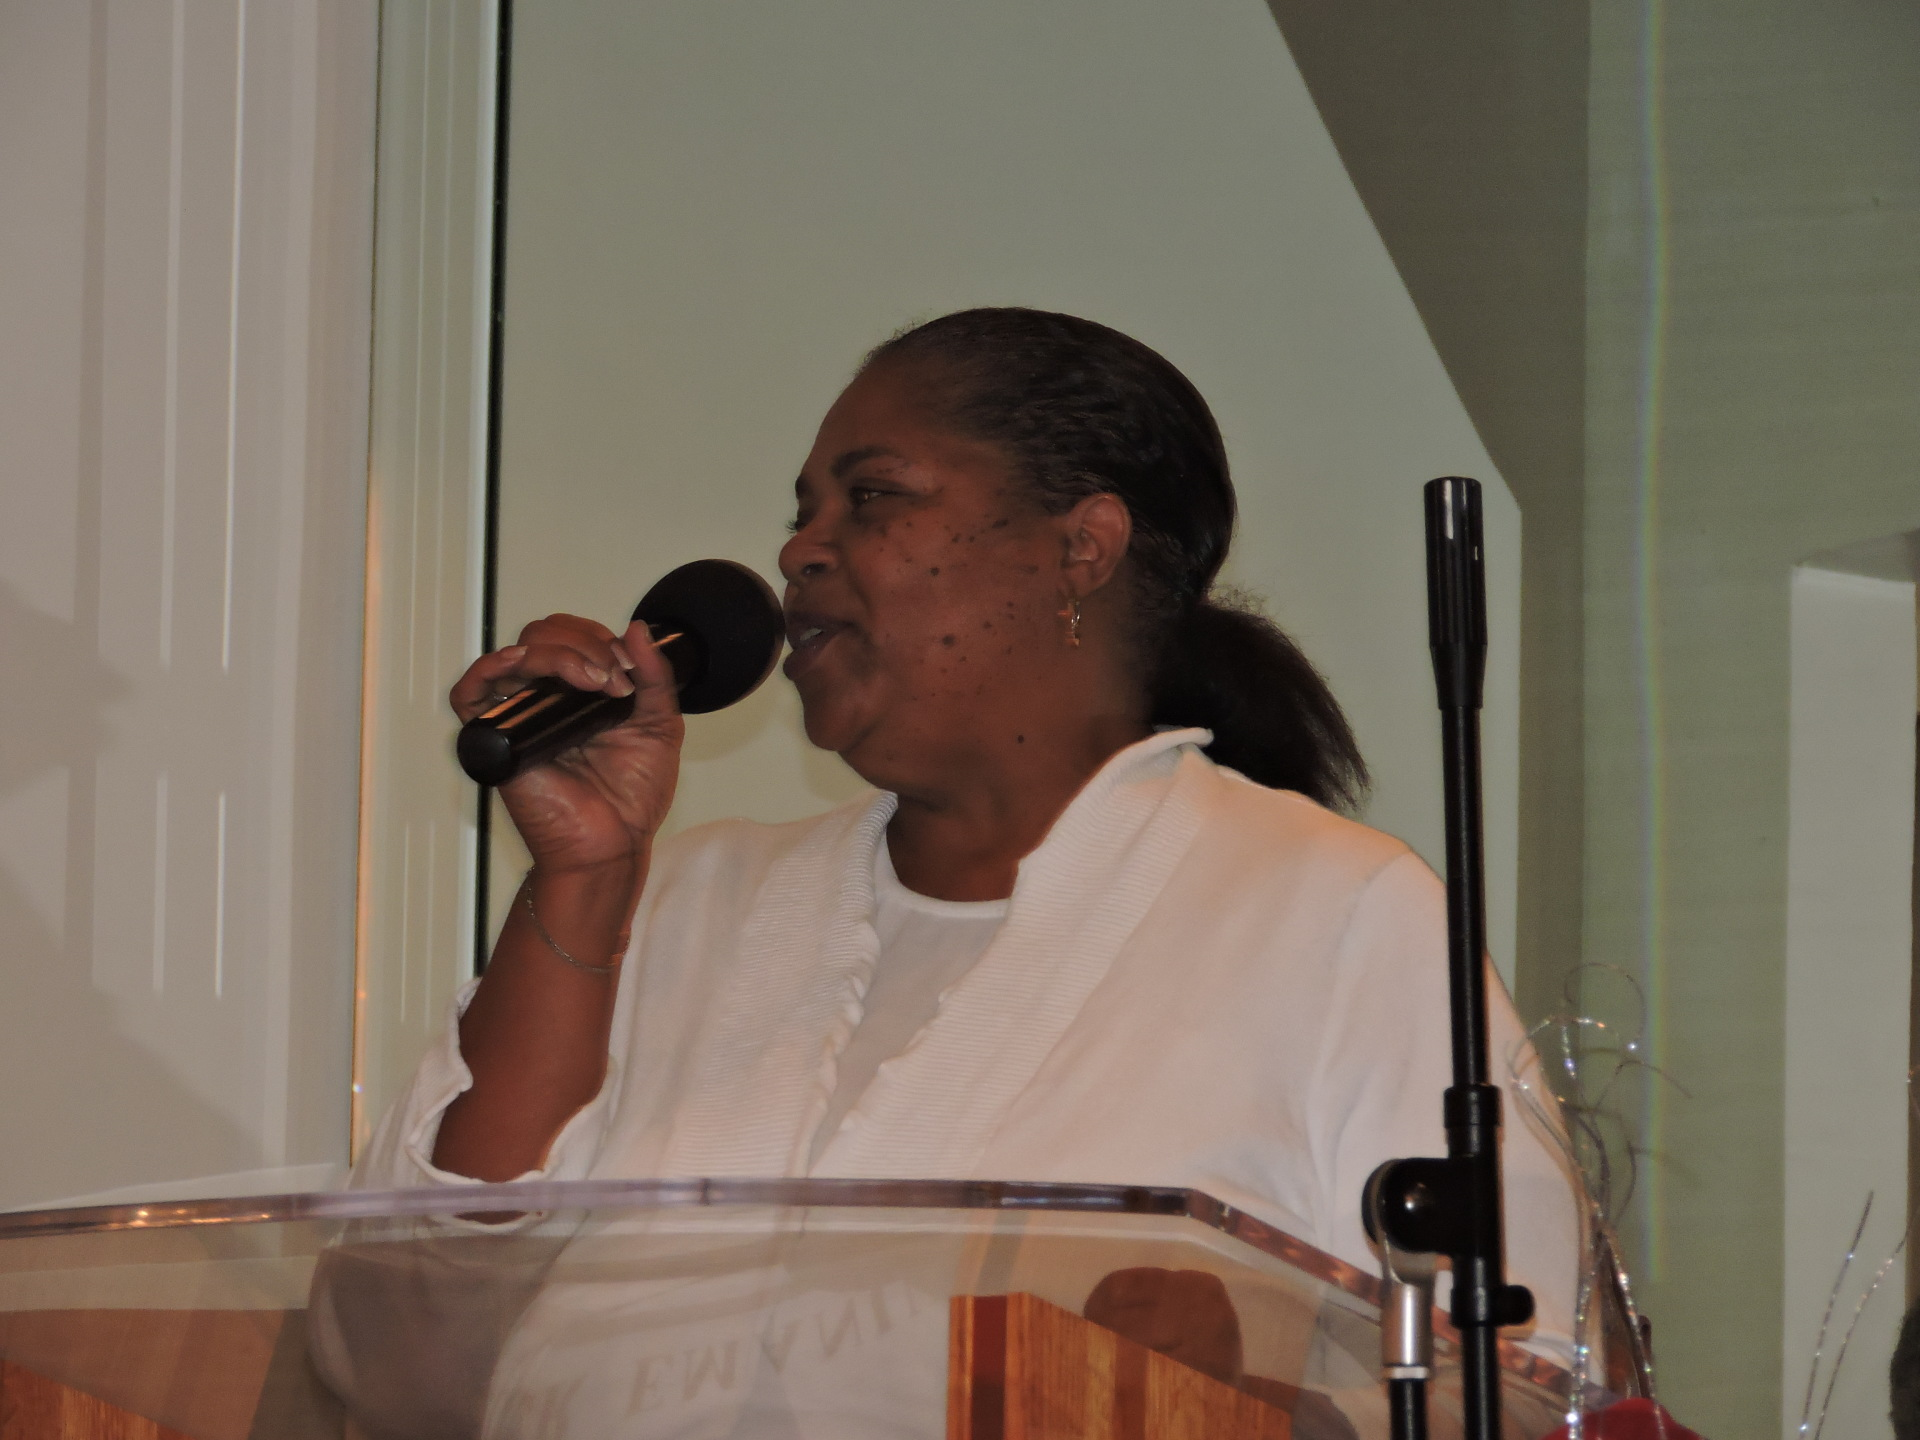 Elder Shirlene Peten